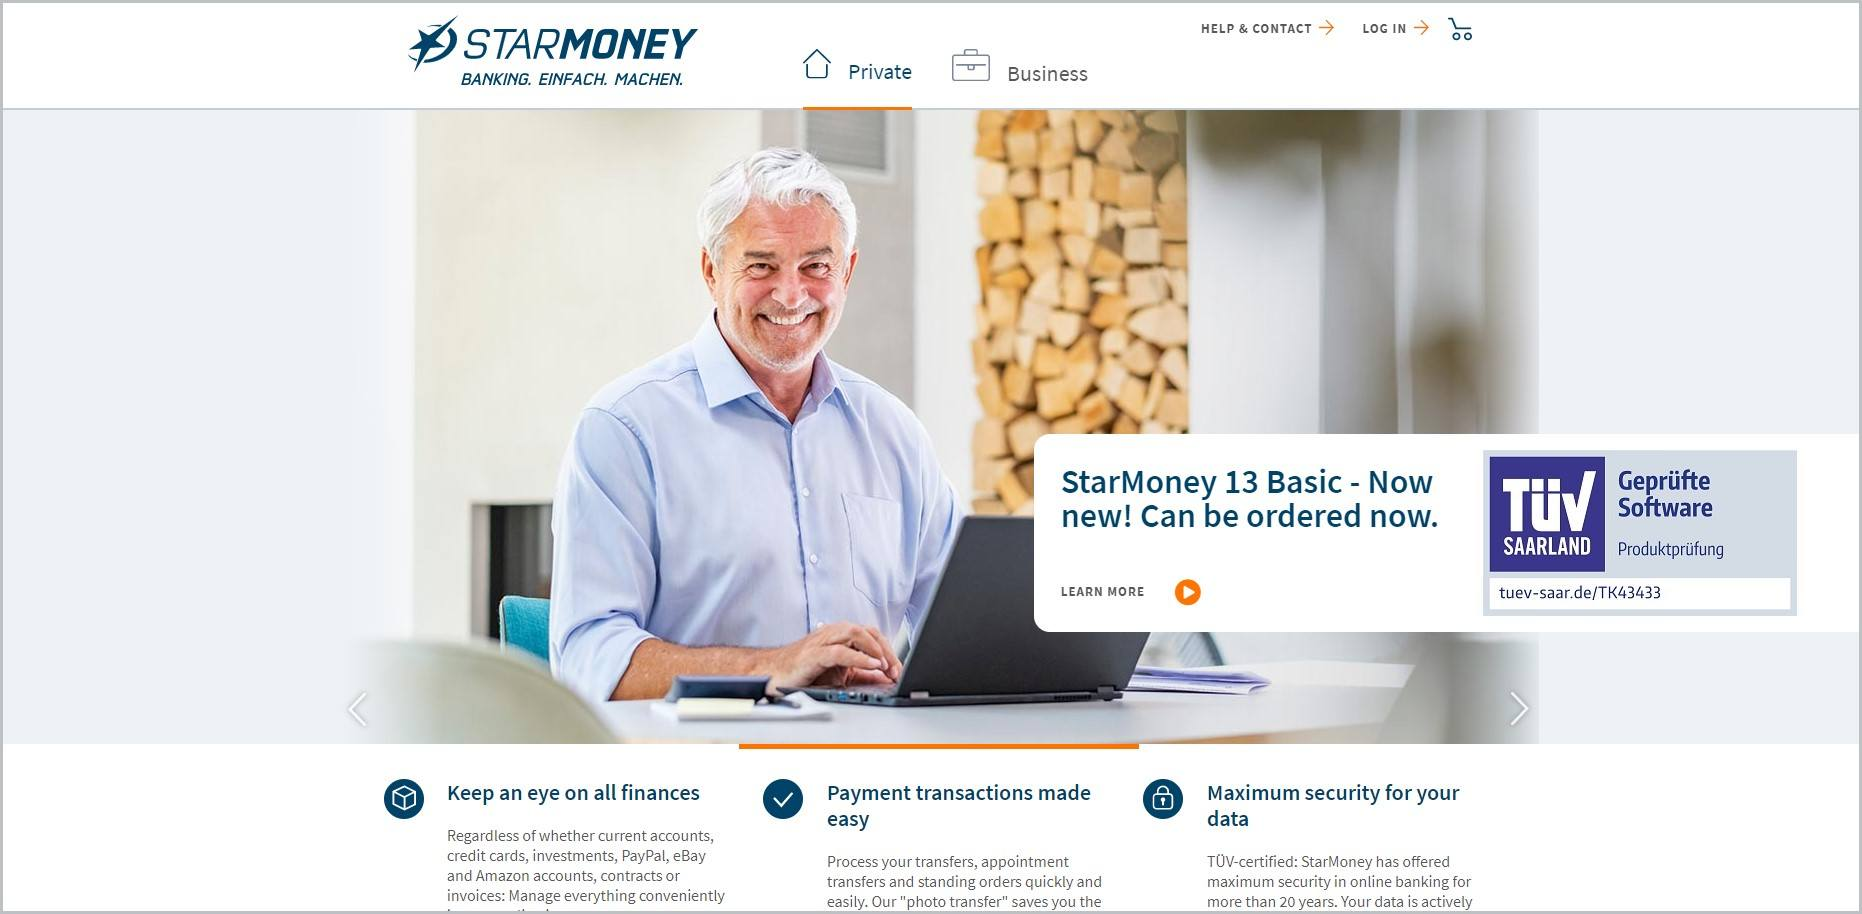 screenshot of StarMoney homepage with white header bearing the website's name and navigation menu, it also showcases the features of their products